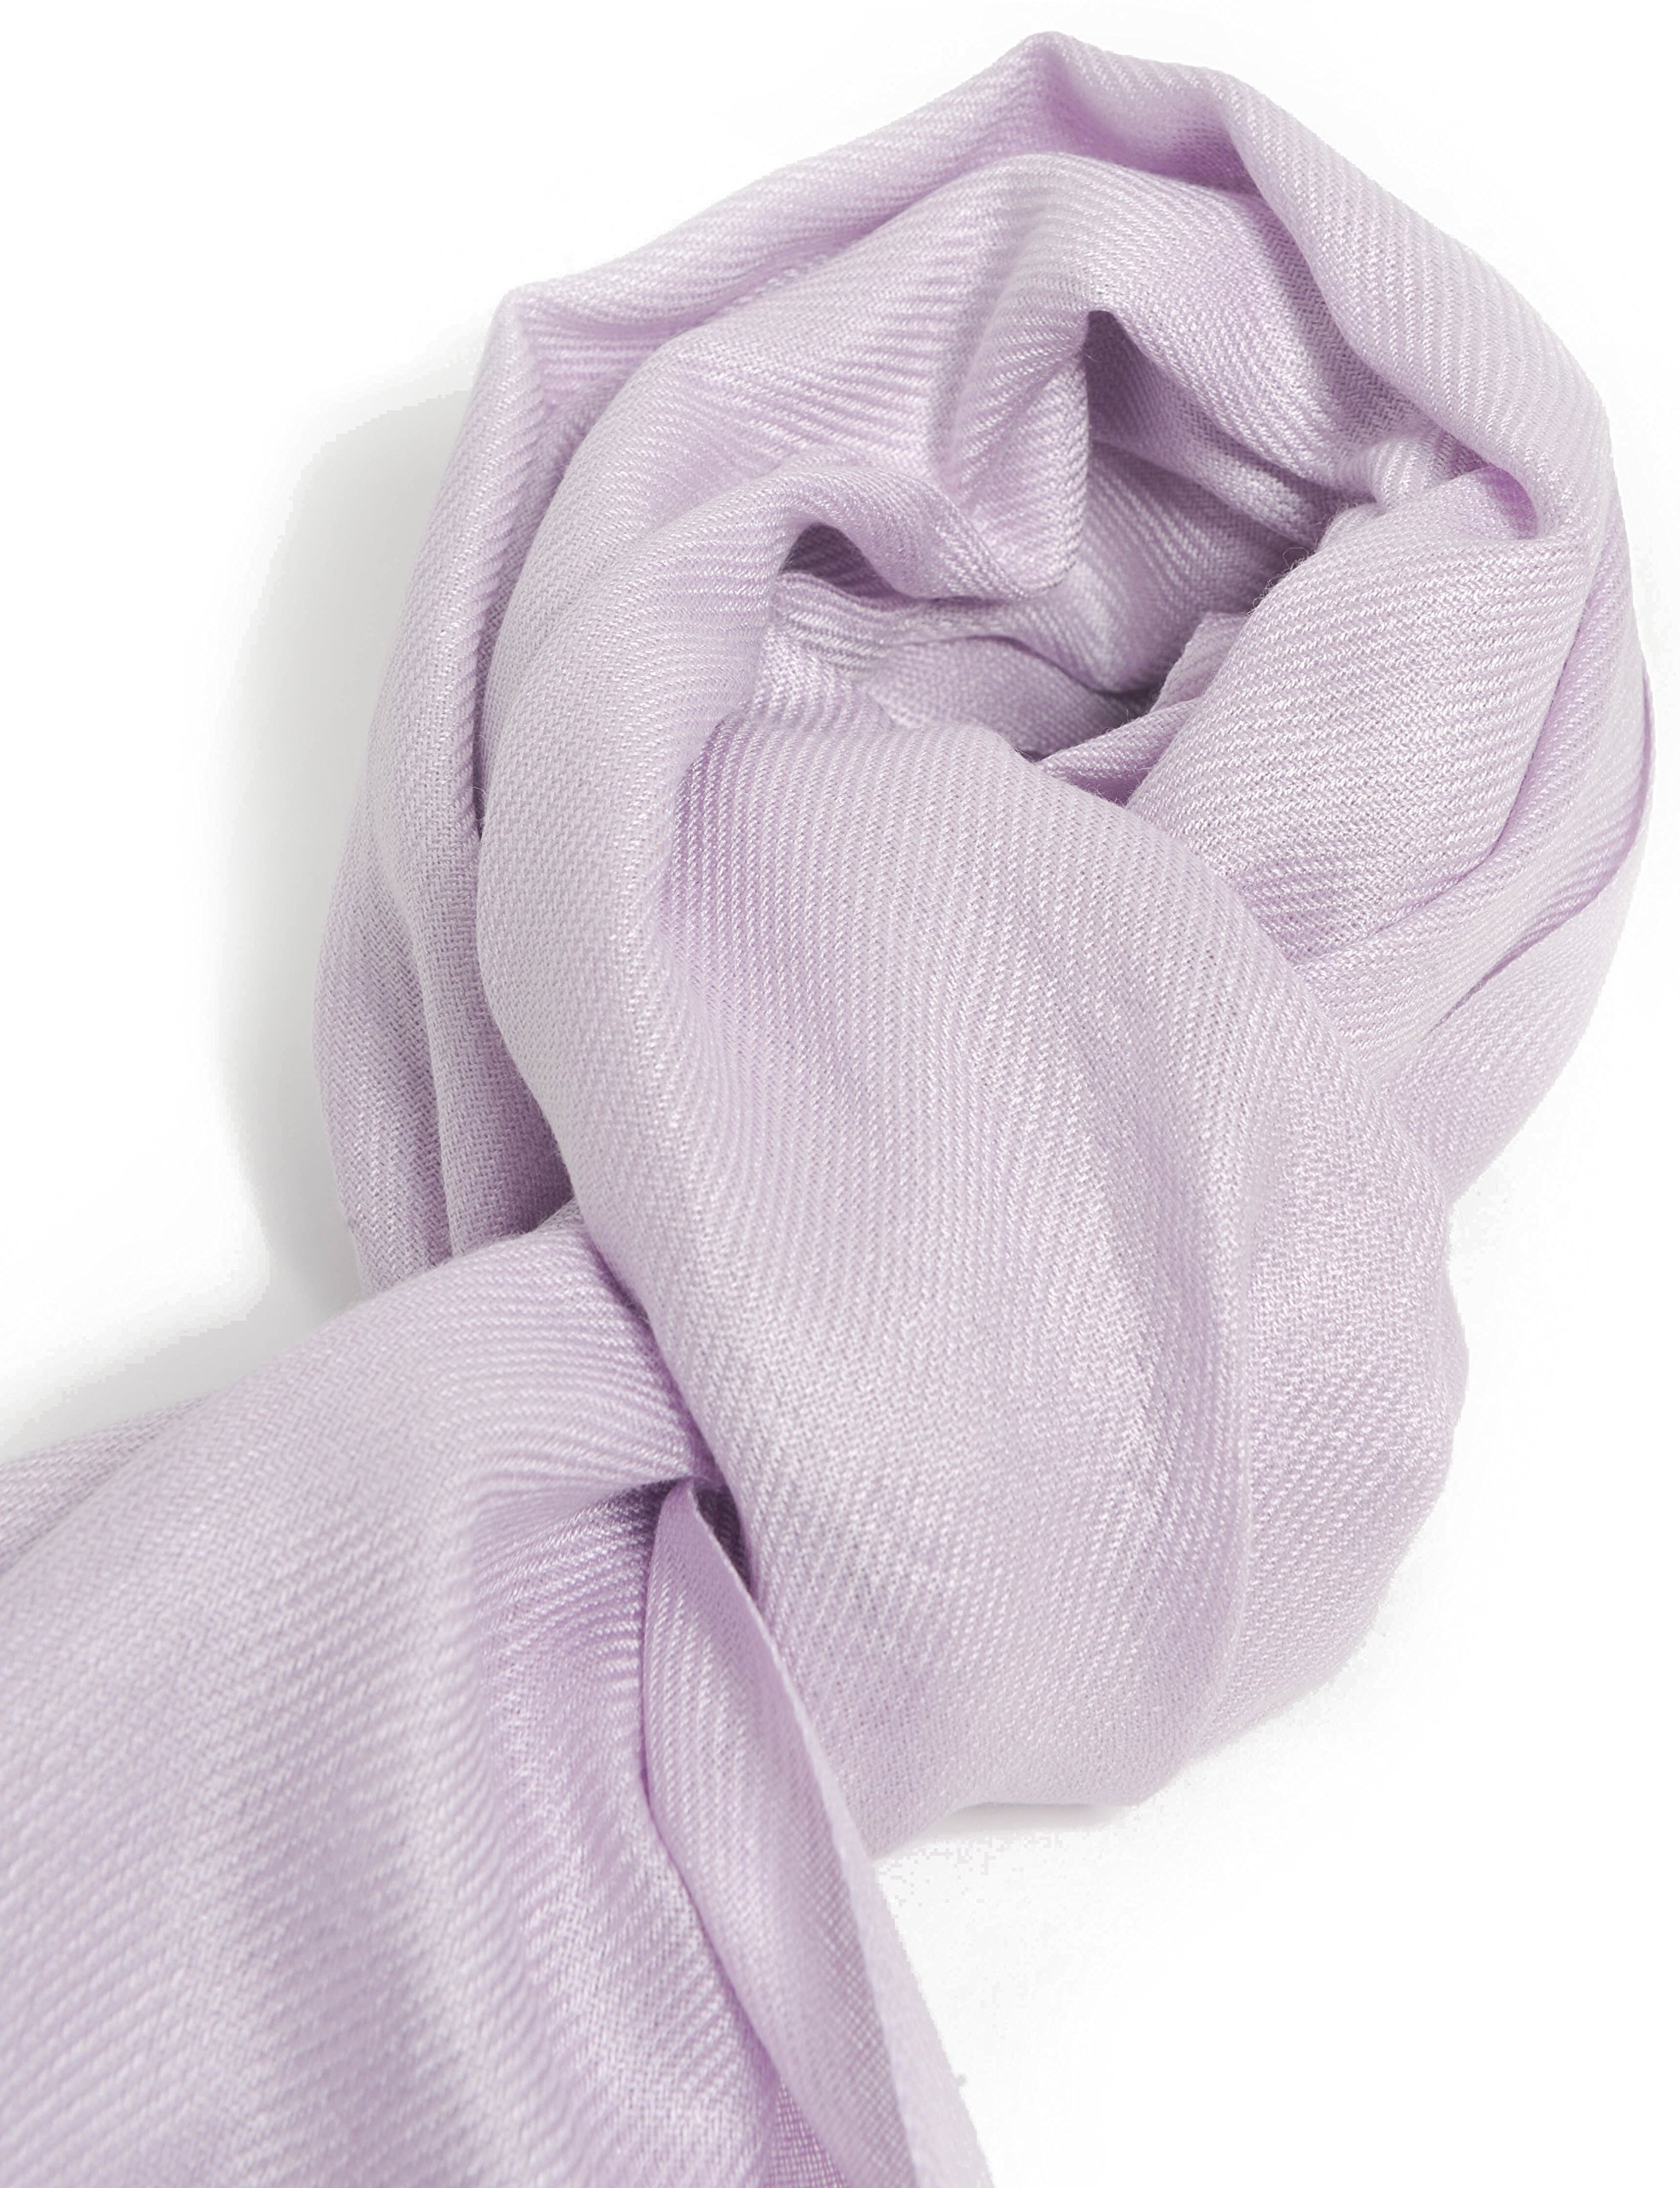 Premium Large Soft Silky Pashmina Shawl Wrap Scarf in Solid Colors (Light Purple)